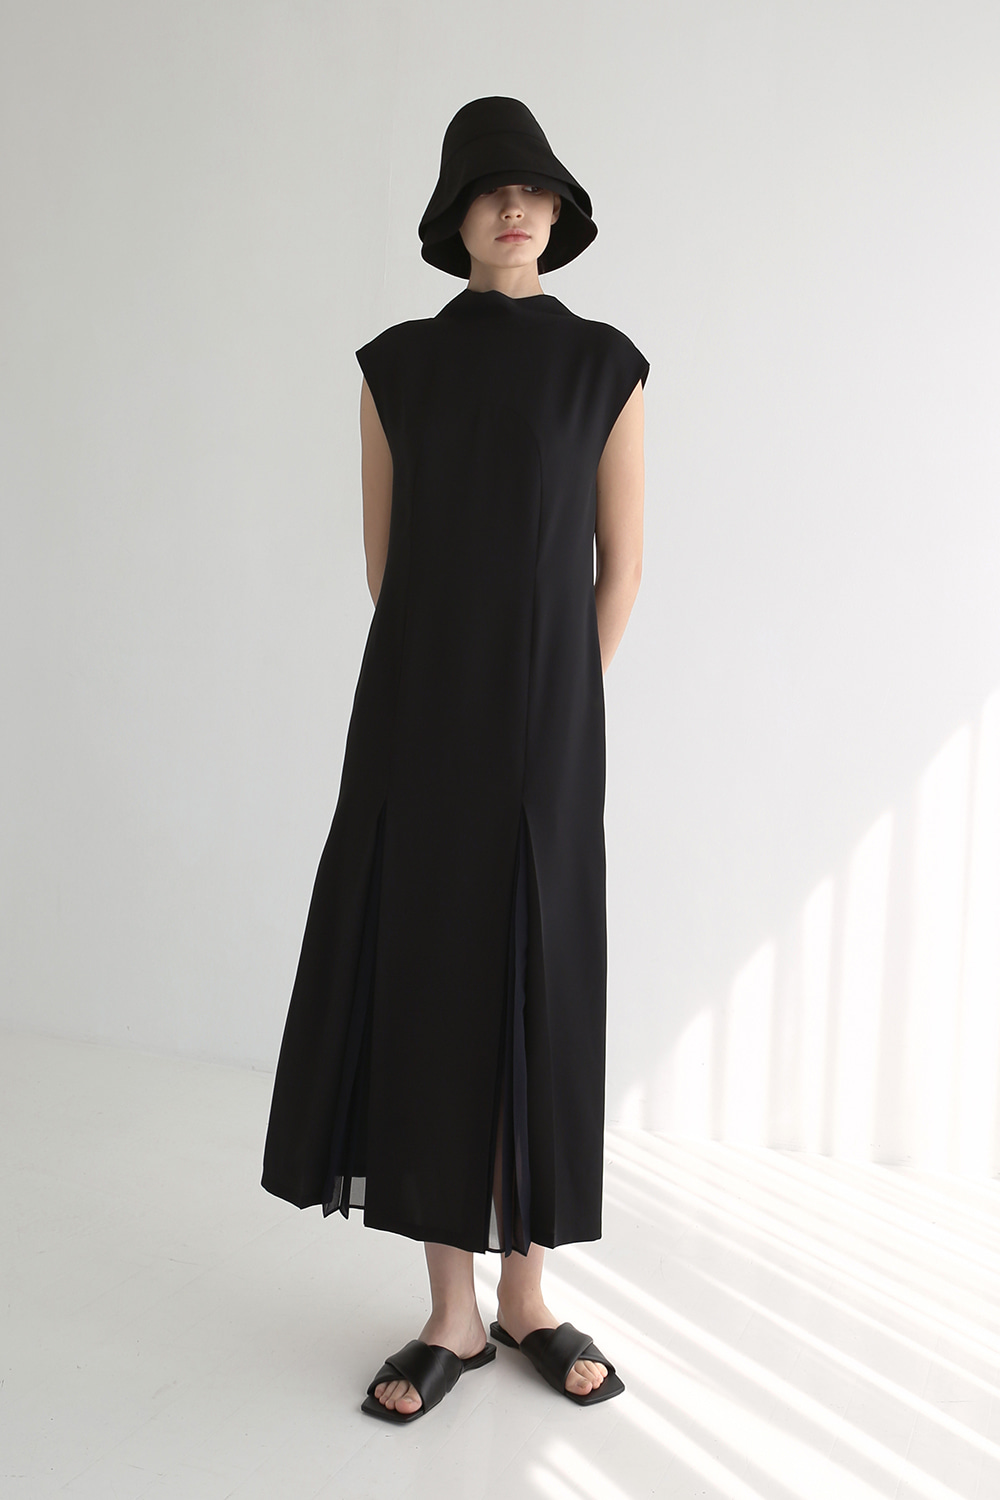 [6.1 예약발송] [**6.8 예약발송] 20SS SHEER PLEATED BOW-NECK DRESS (BLACK)